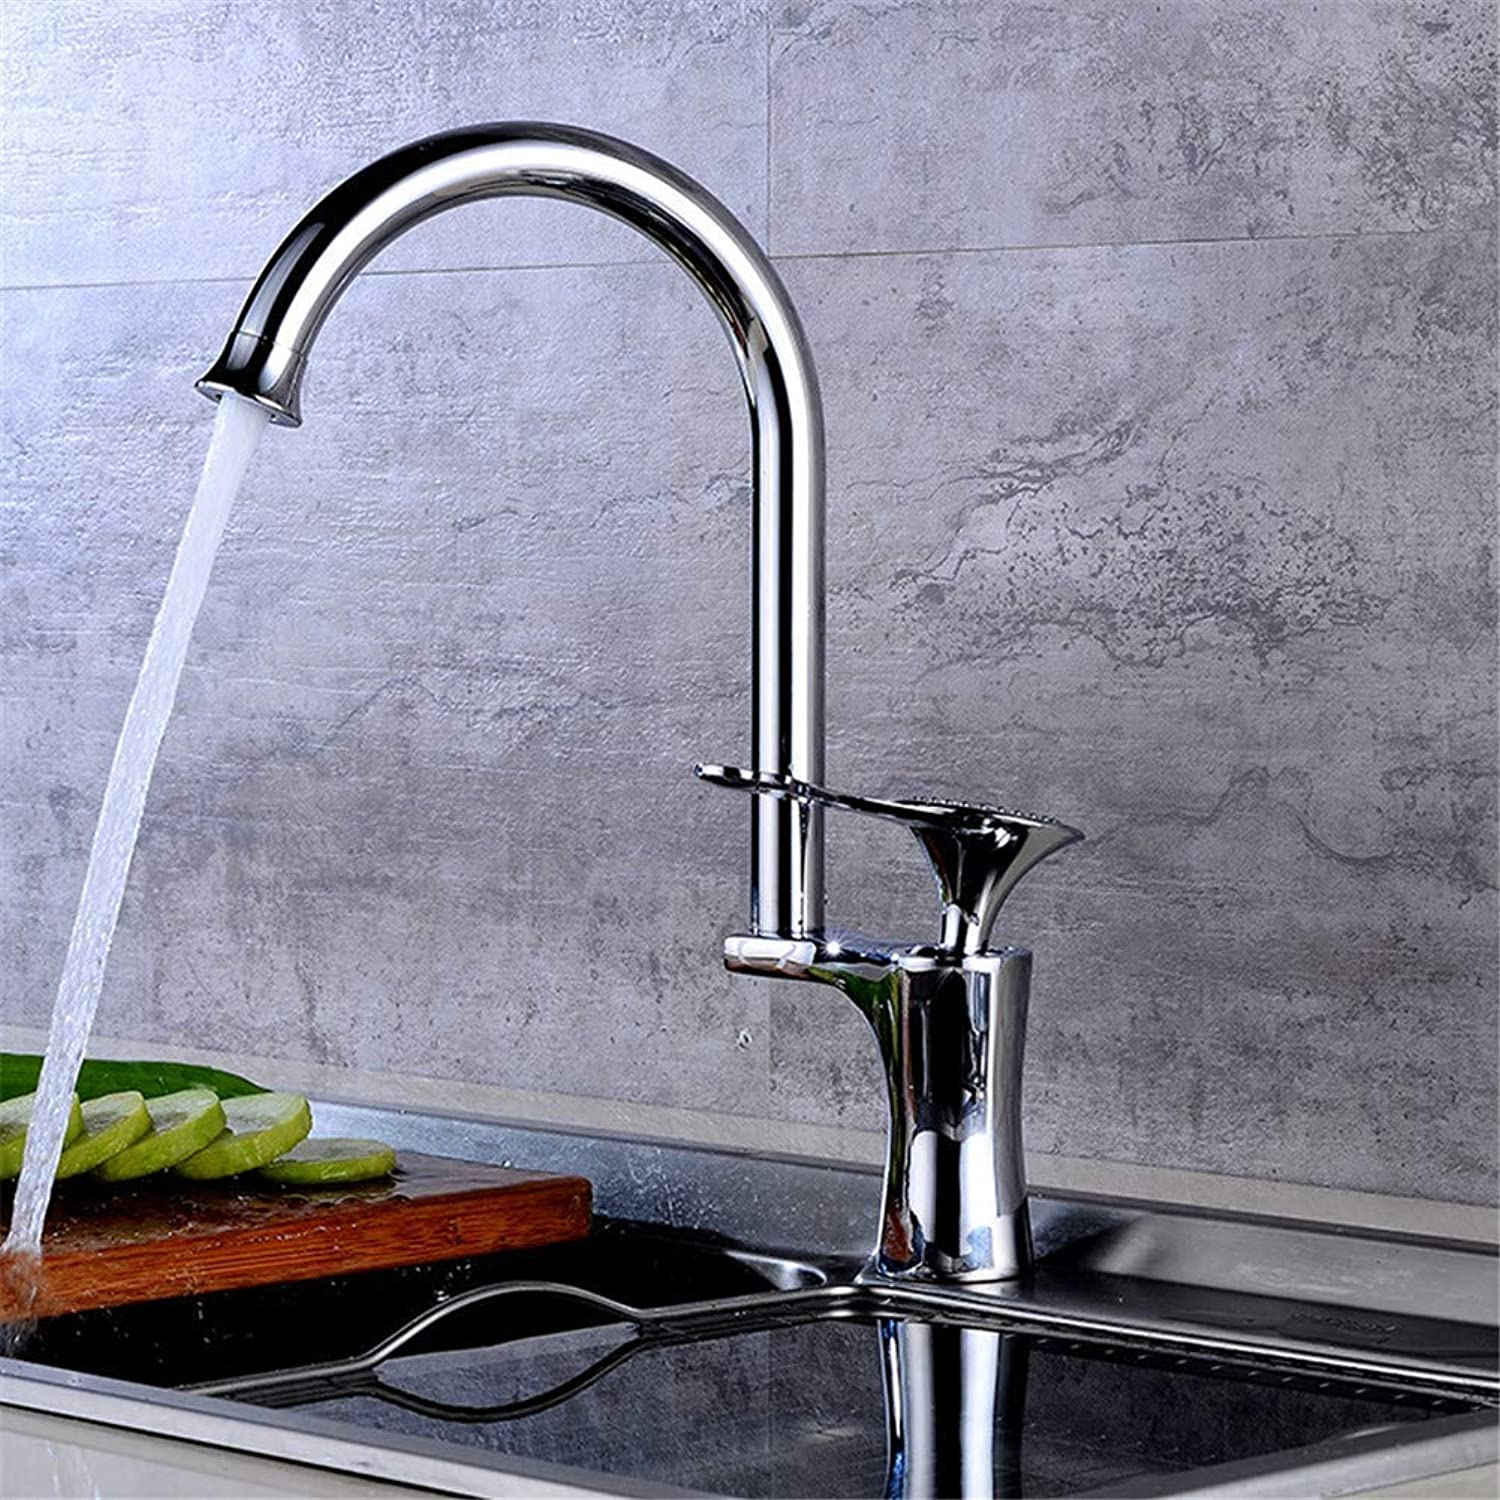 Faucet-Stainless Steel Kitchen Faucet Thickened 360 Degree redating Black Deck Mounting Hot and Cold Basin Faucet,D